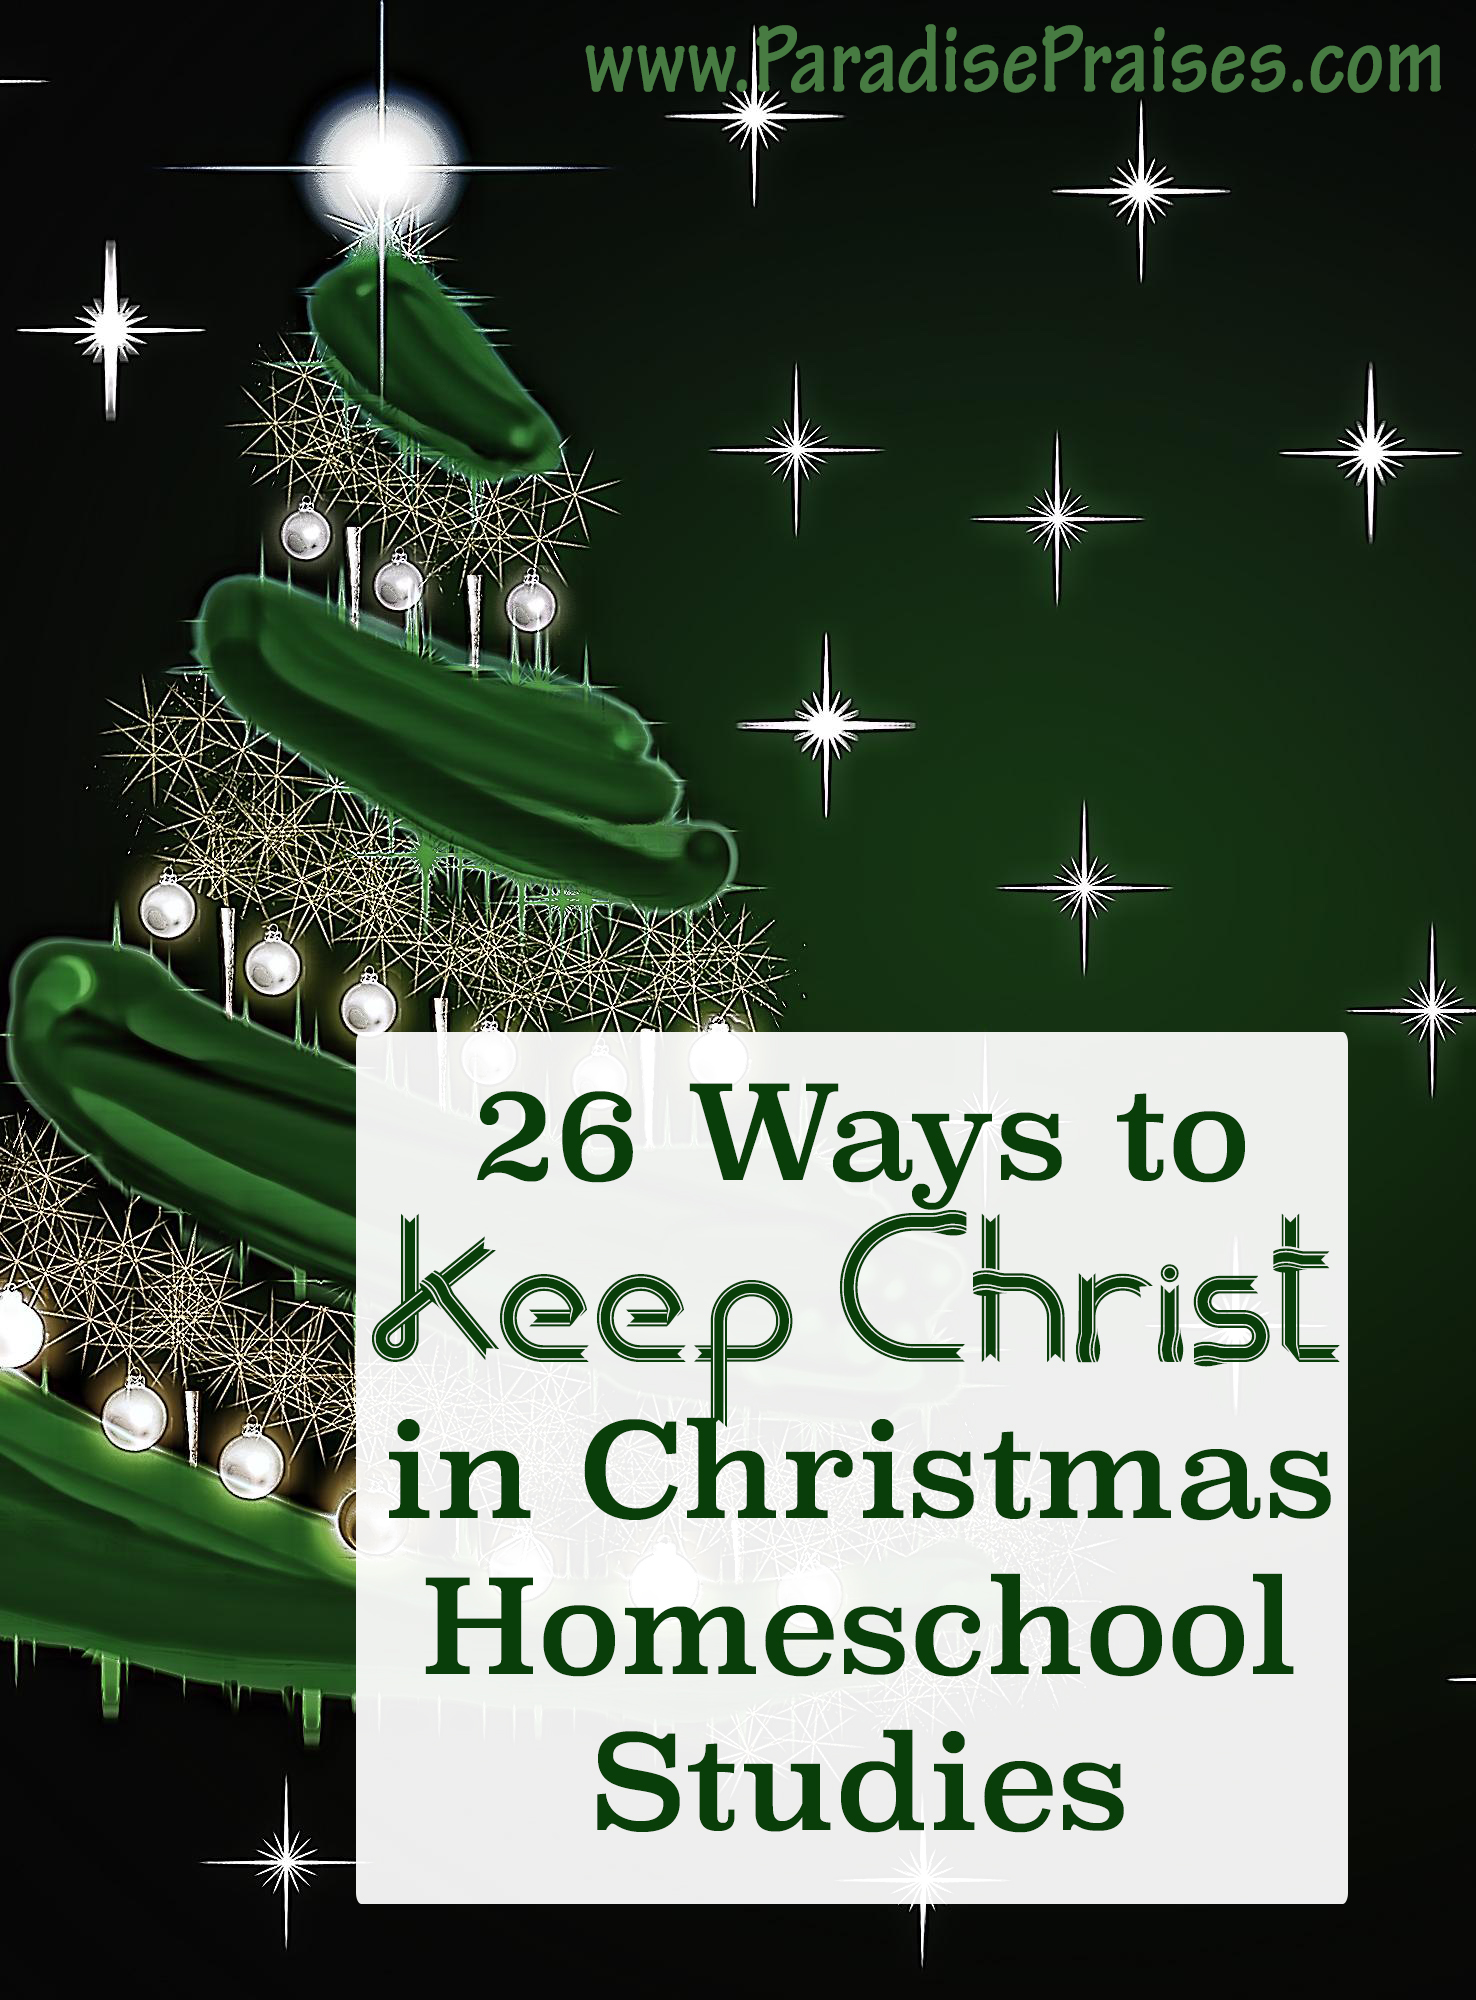 26 Ways to Keep Christ in Christmas Homeschool Studies